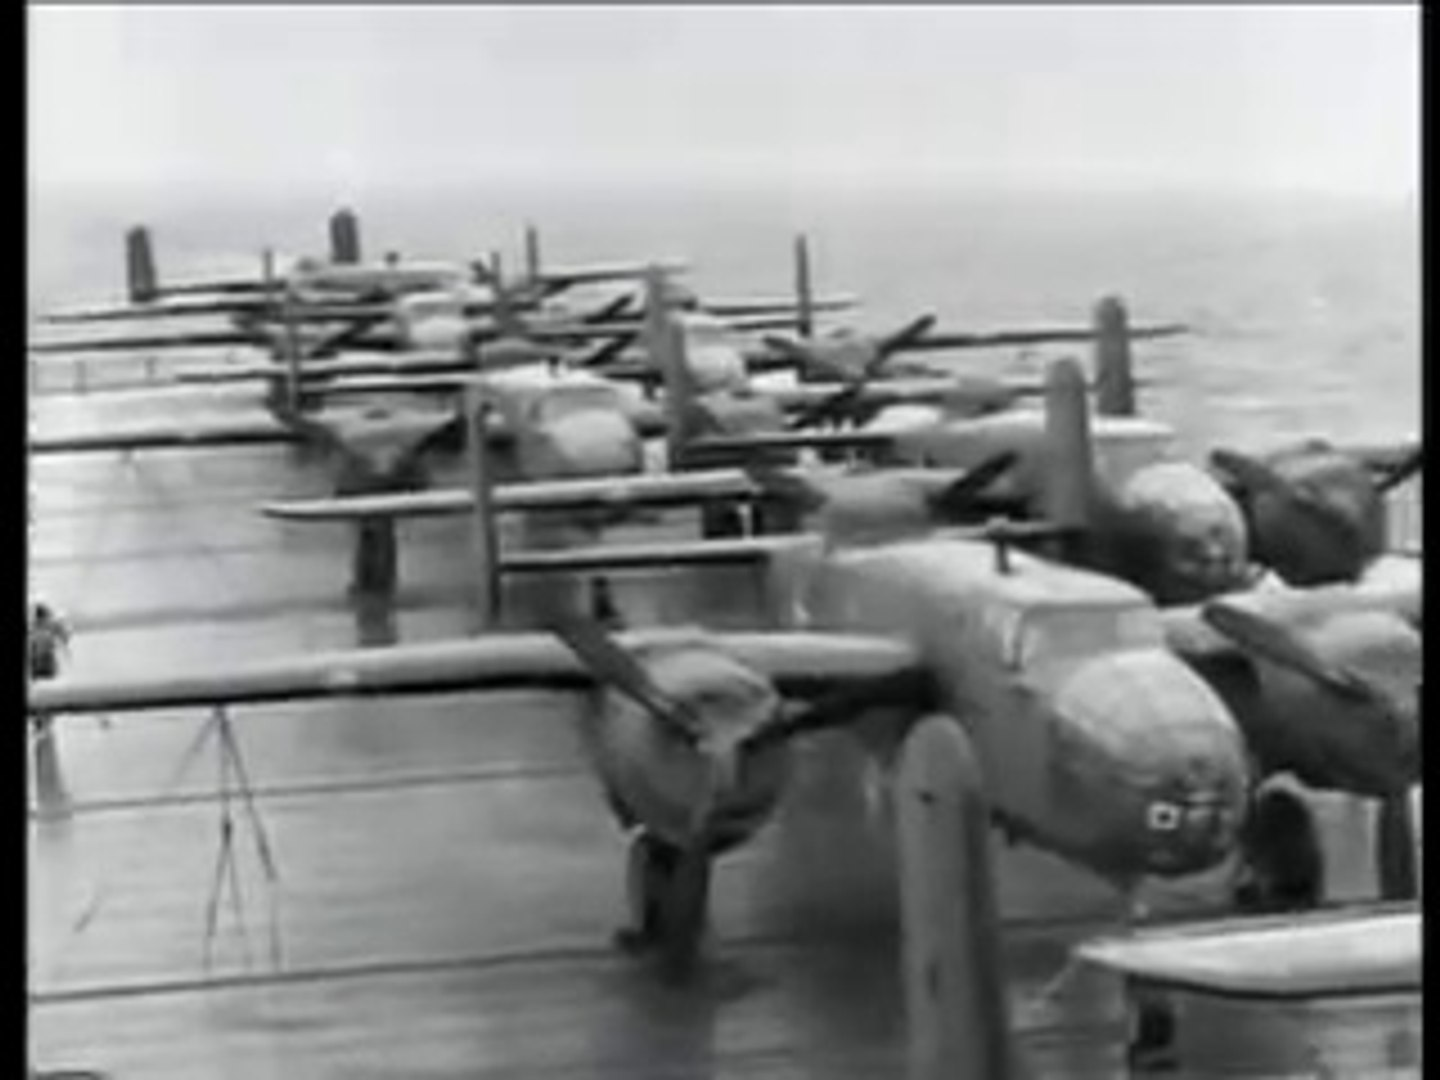 THE GREAT SHIPS - AIRCRAFT CARRIERS - History Military War Documentaries (full documentary)